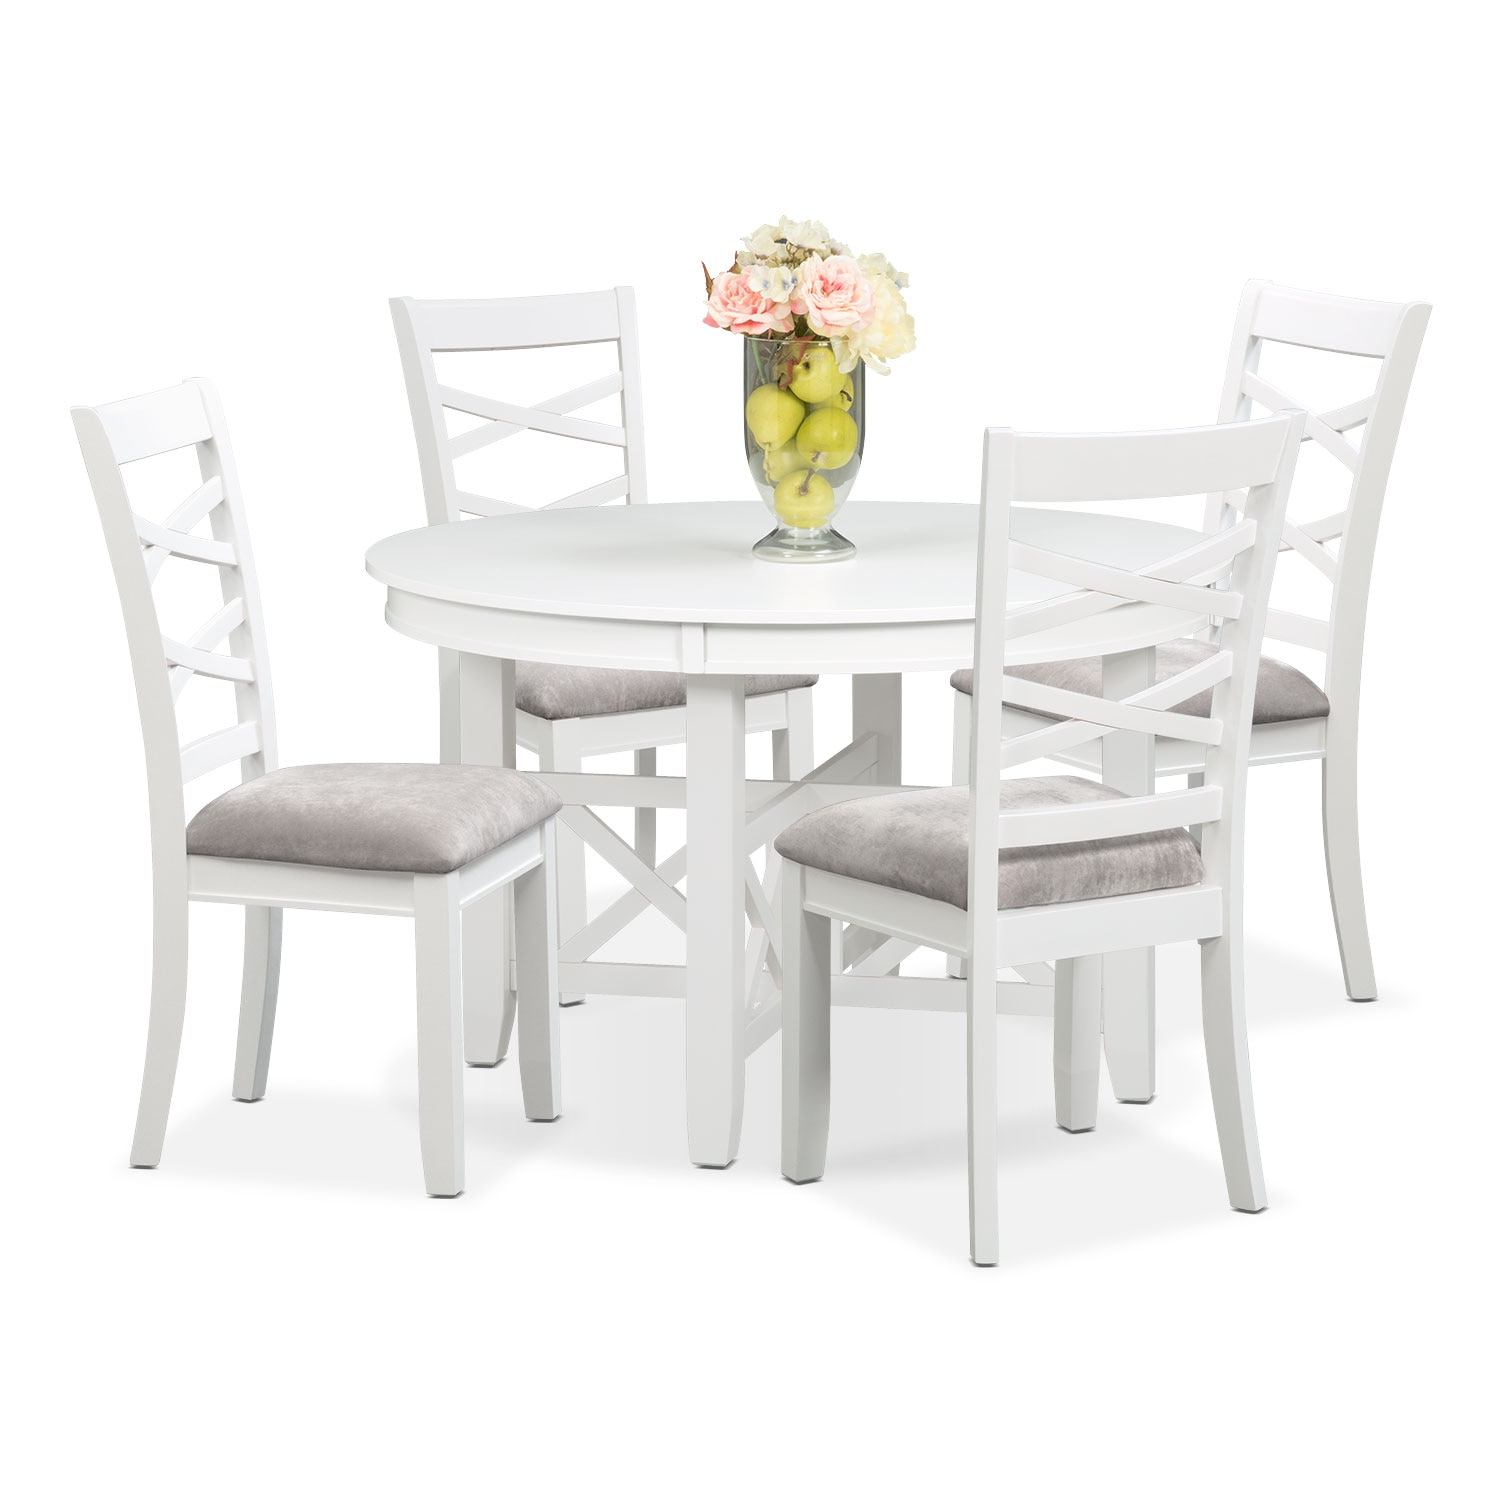 Americana White 5 Pc. Standard-Height Dinette